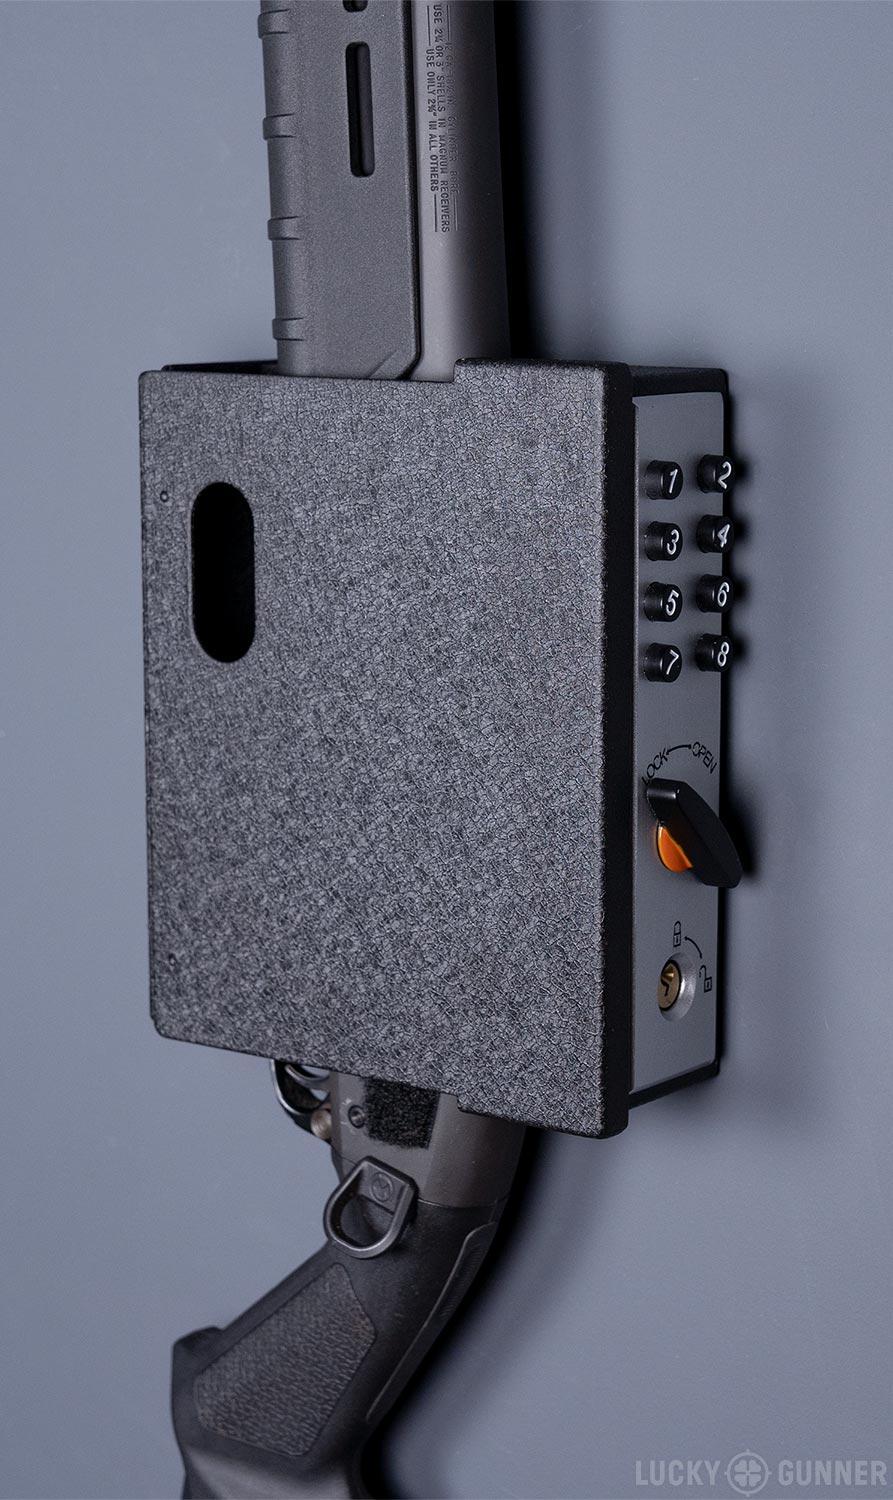 The Best And Worst Quick Access Safes For Rifles And